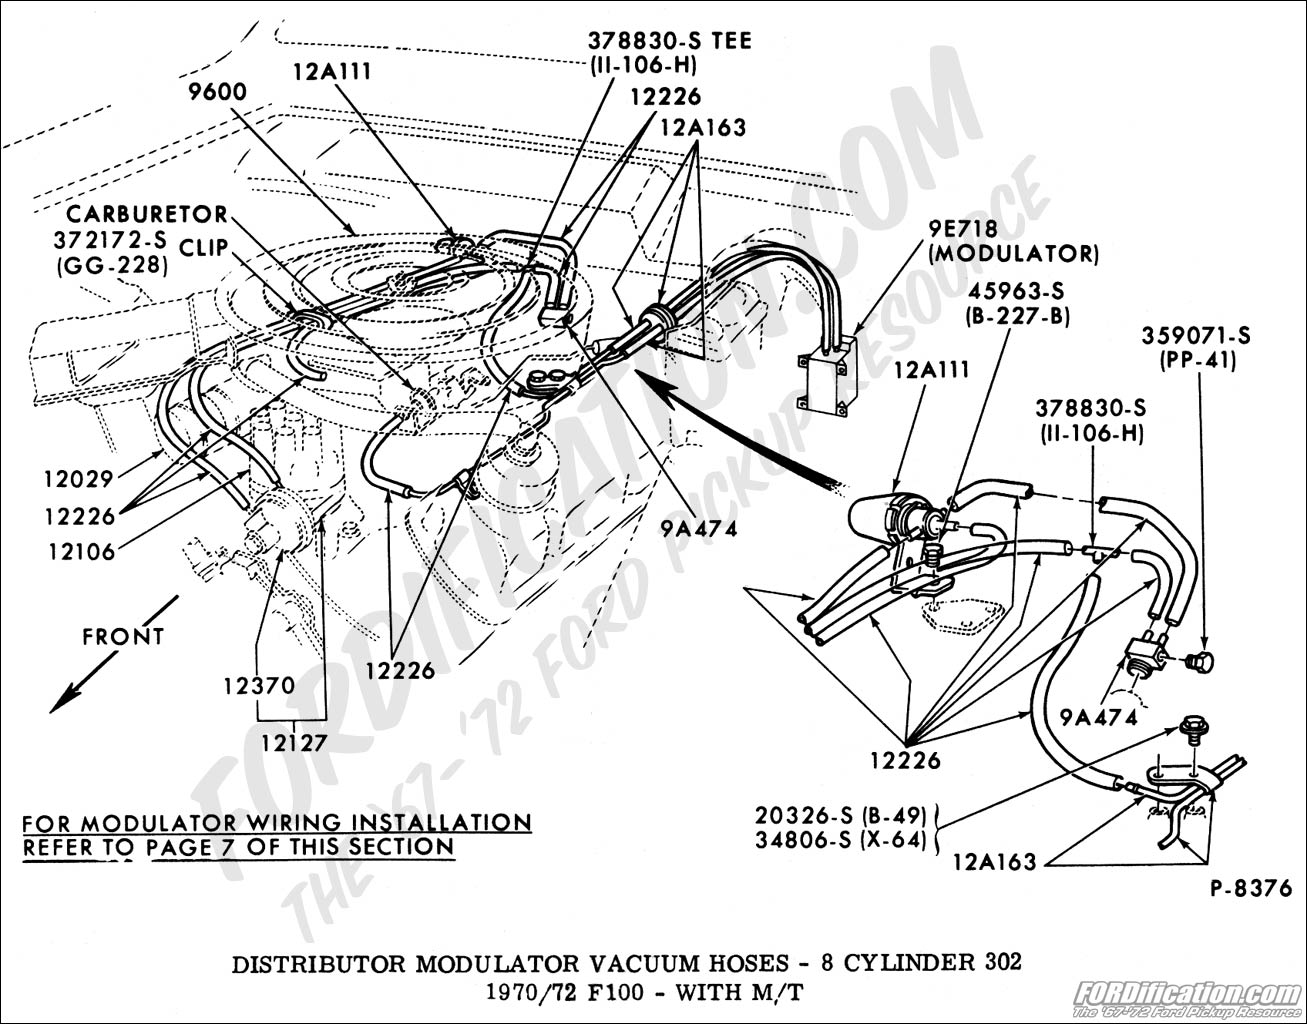 hight resolution of electrical wiring diagram for farmall 350 online wiring diagramfarmall 350 wiring diagram wiring diagram databasefarmall 350